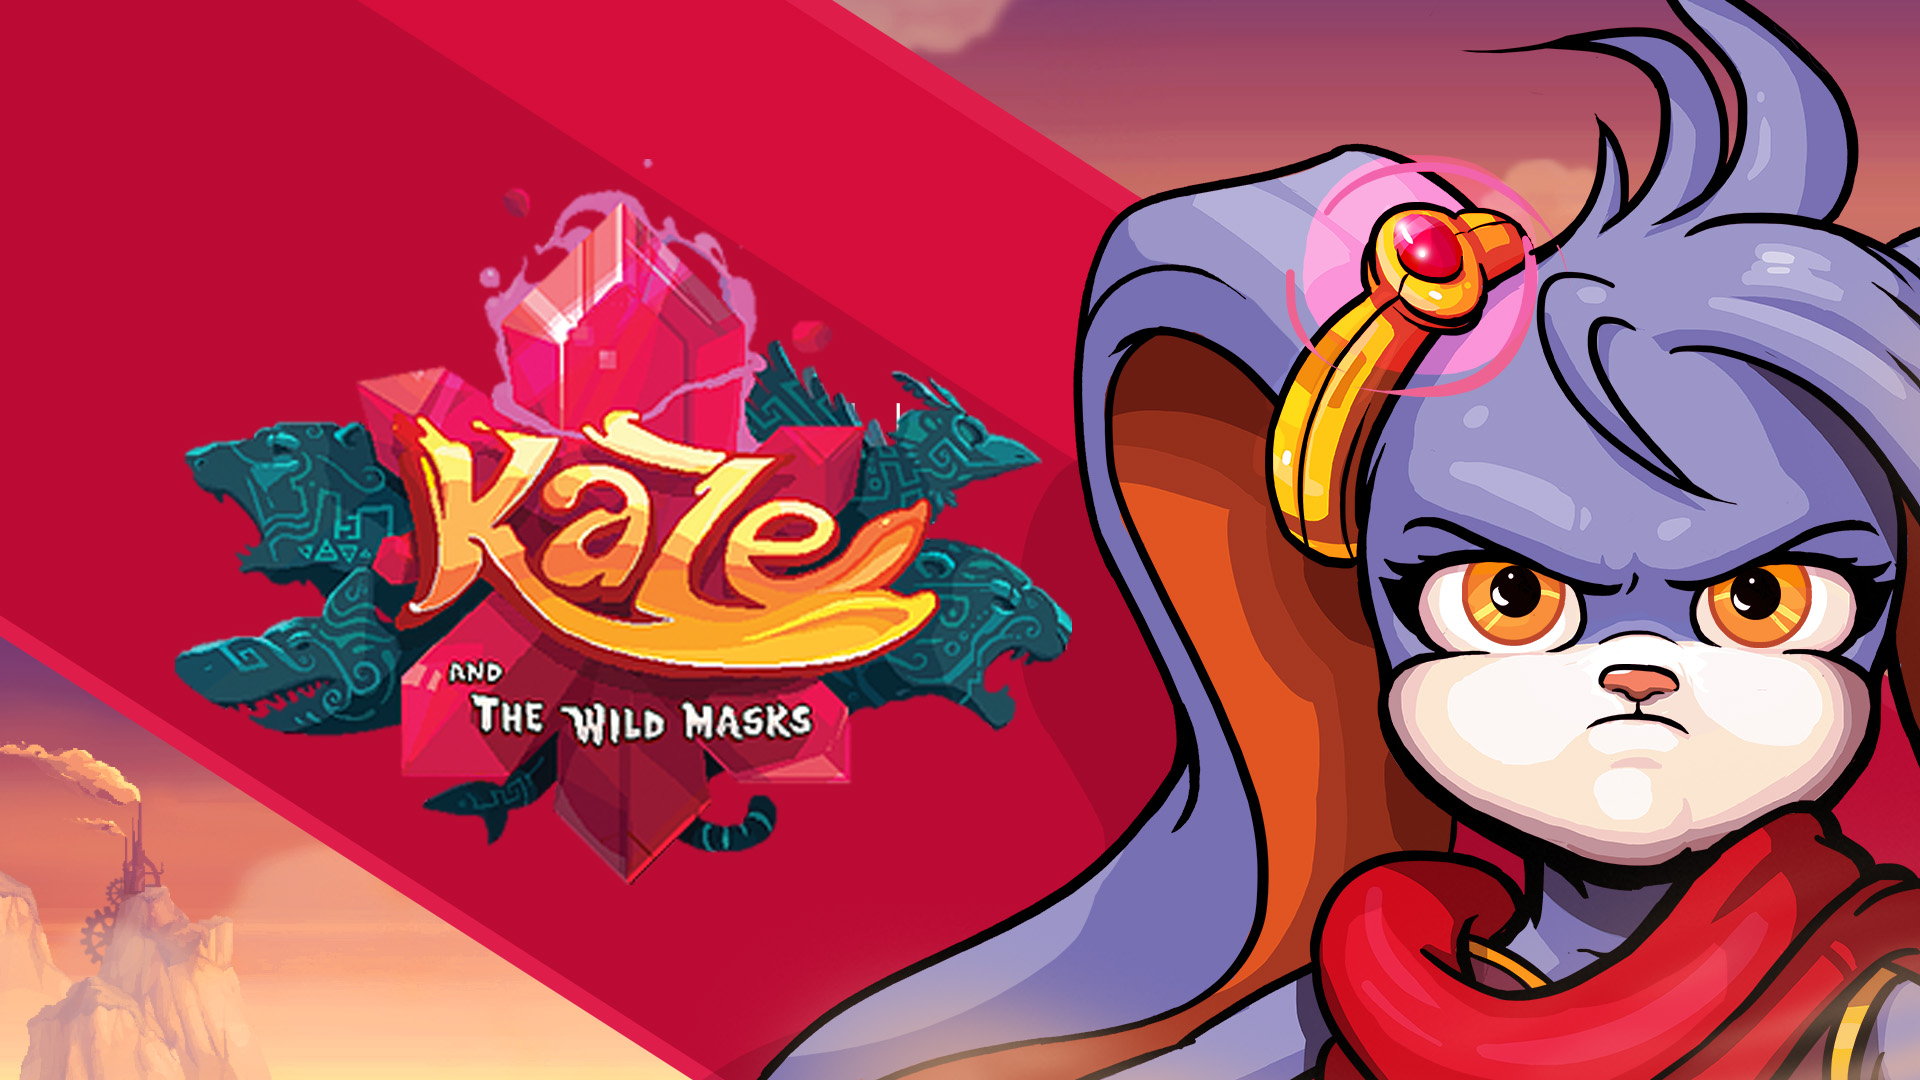 kaze and the wild masks video game wallpaper 73717